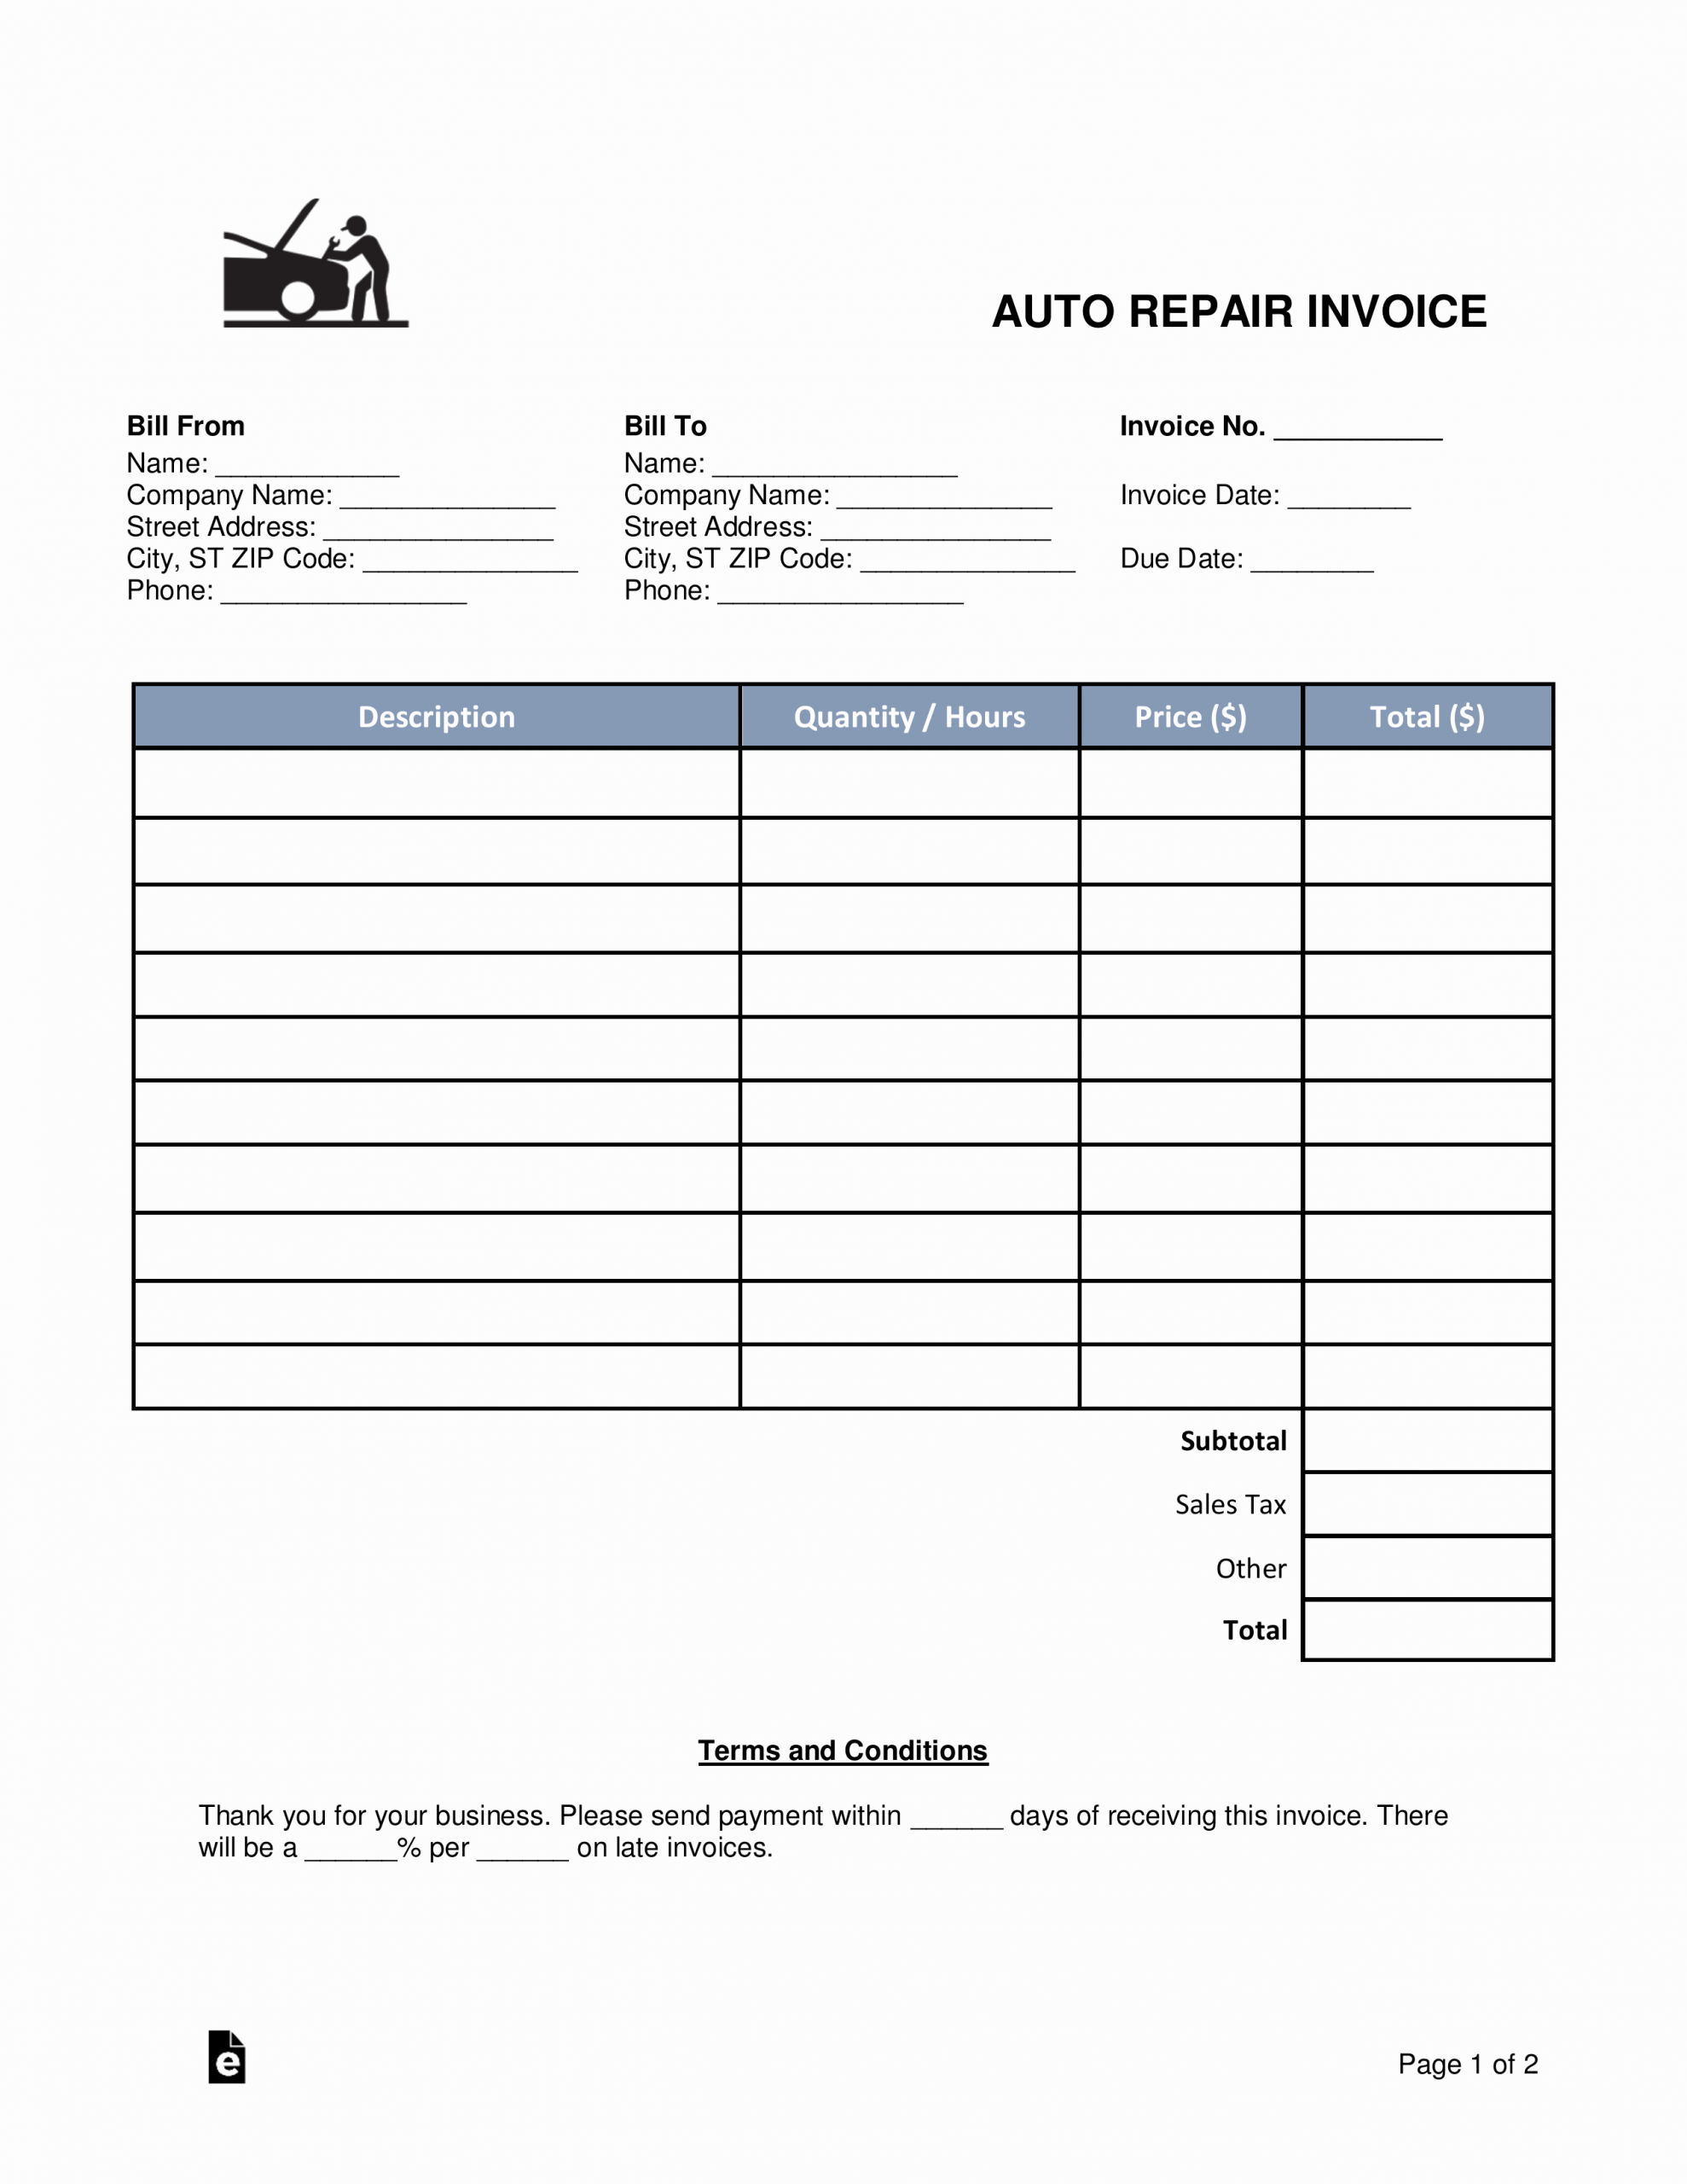 Auto Repair Invoice Template Free Unique Free Auto Body Mechanic Invoice Template Word